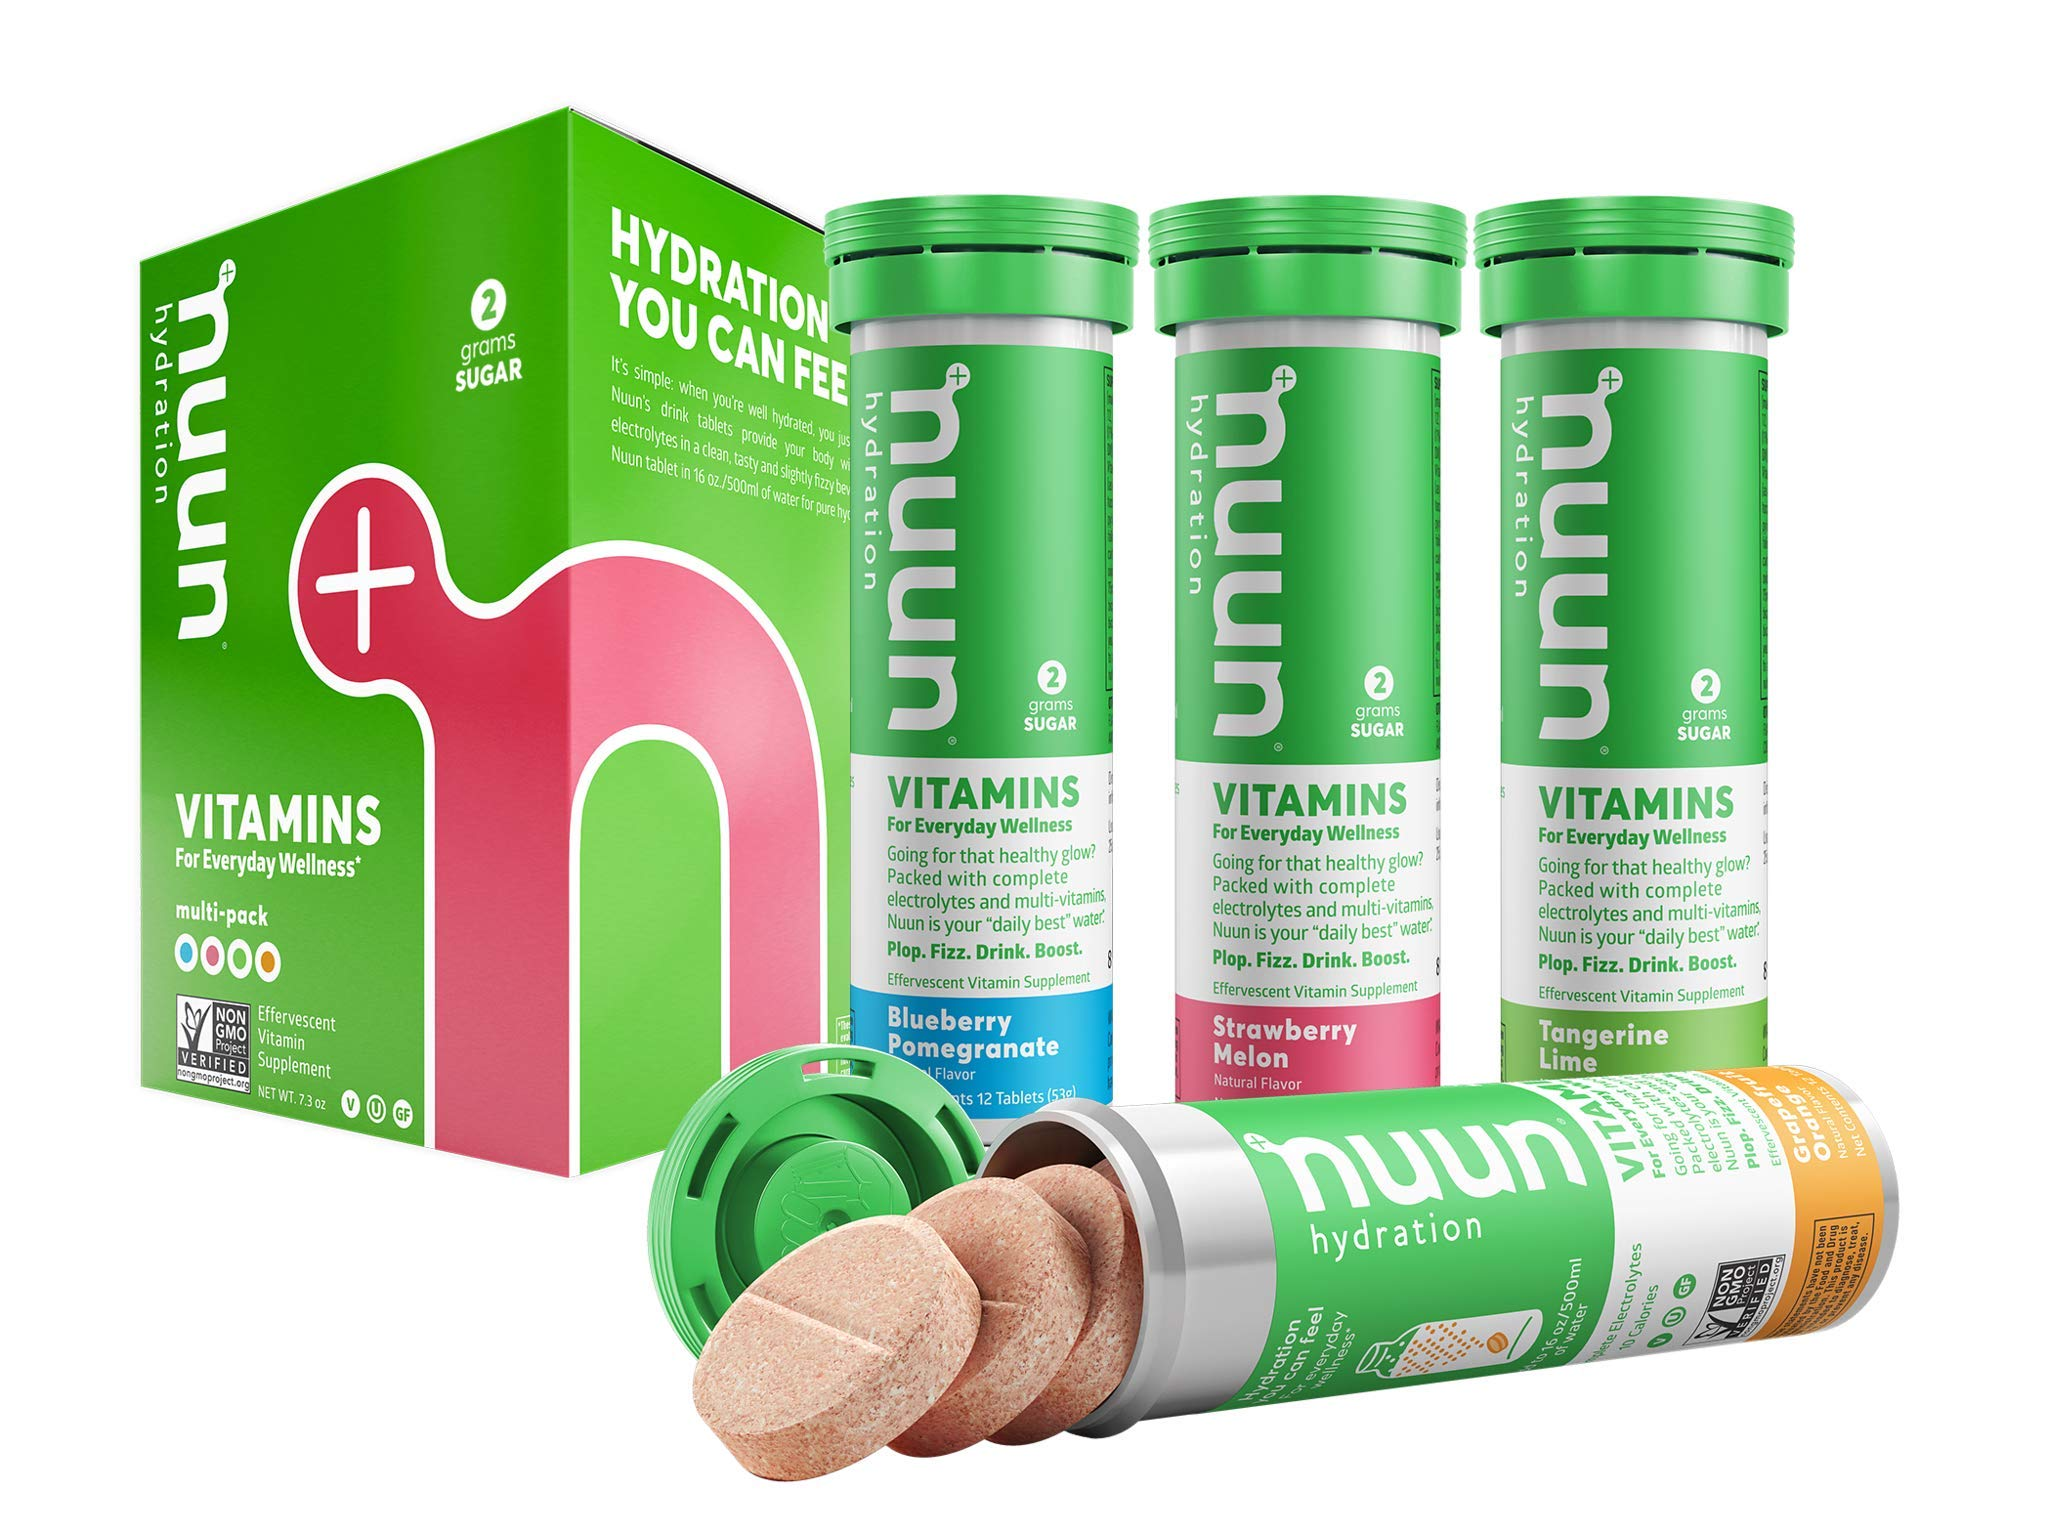 Nuun Hydration: Vitamin + Electrolyte Drink Tablets, Mixed Fruit Flavor Pack, Box of 4 Tubes (48 servings), Enhanced for Energy and Daily Health by Nuun